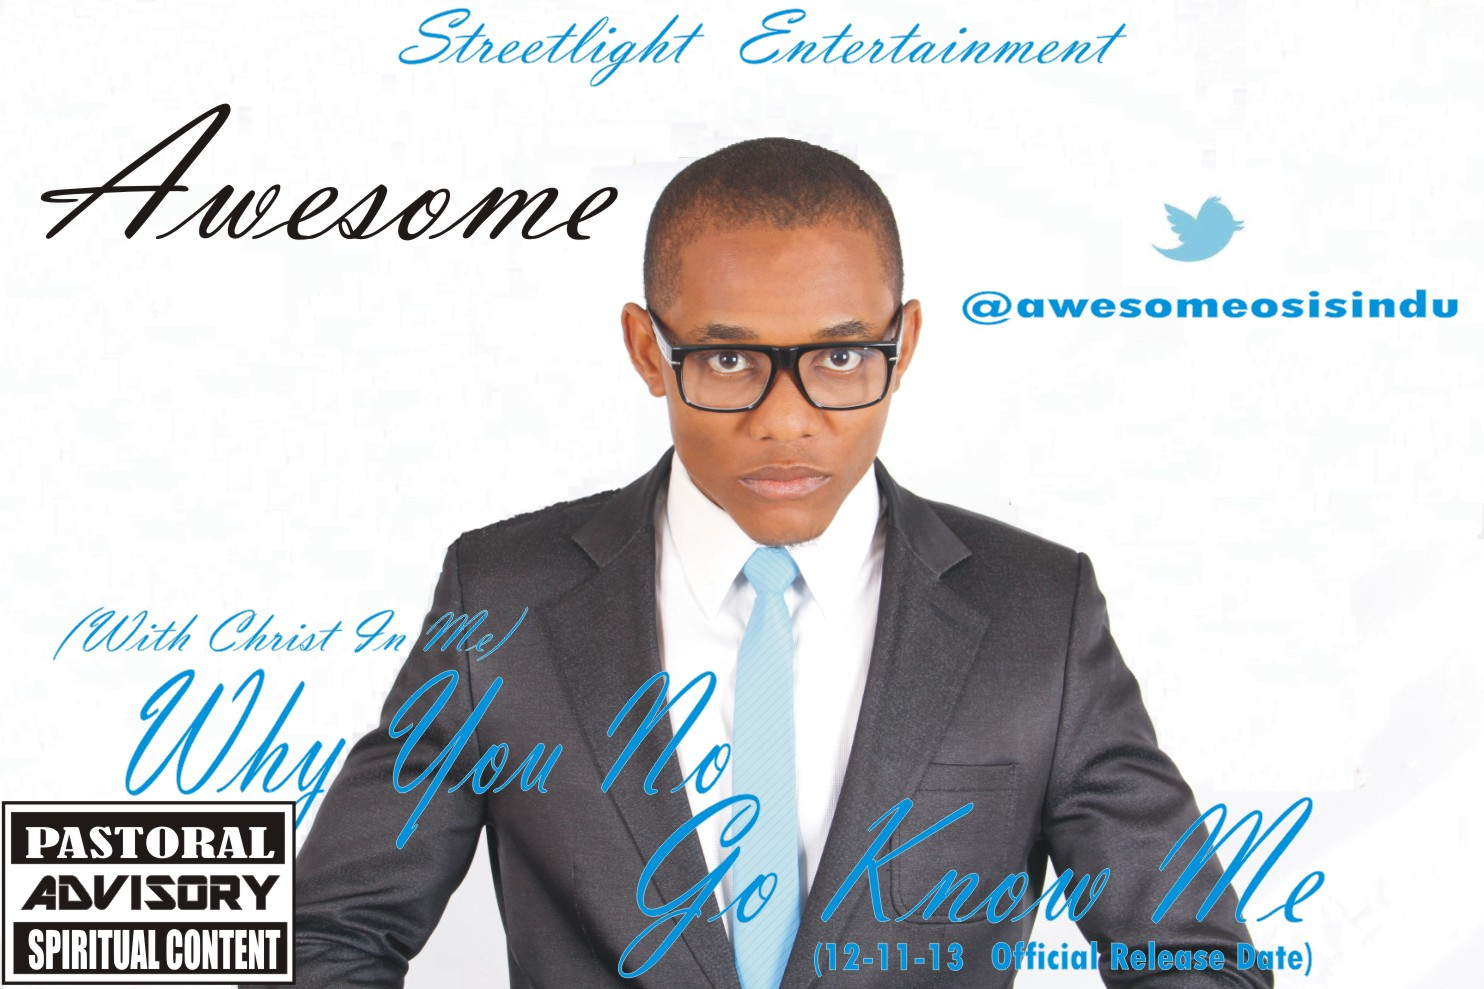 WHY YOU NO GO KNOW ME - Awesome [@AwesomeOsisindu]